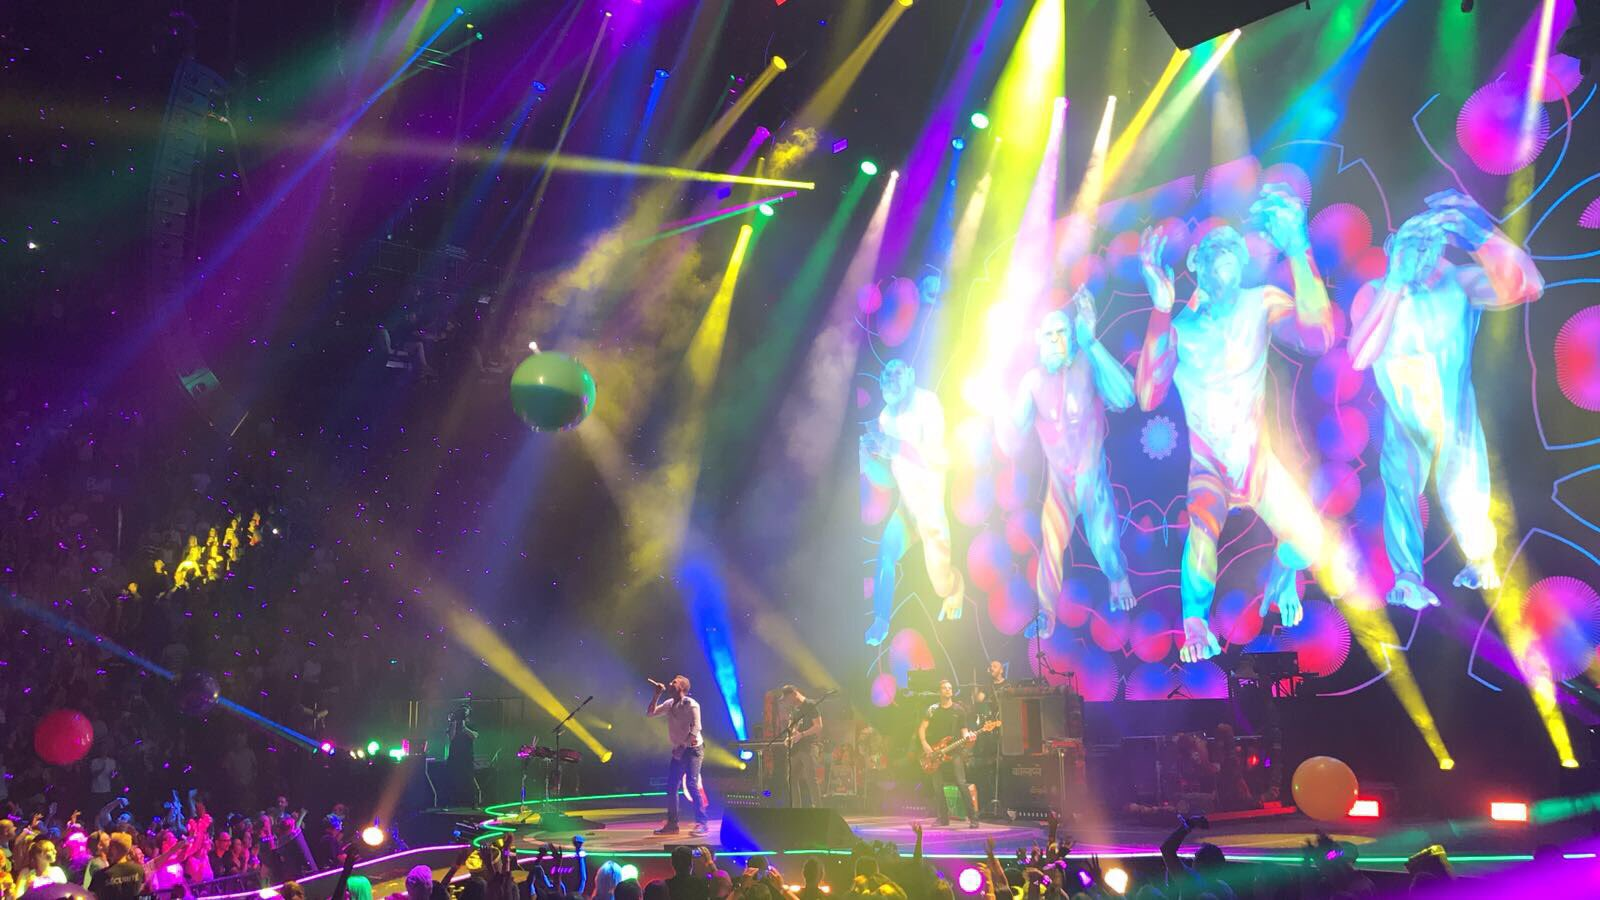 ����Thanks for the shoutout @coldplay. Wonderful show. Enjoyed every minute https://t.co/cVpFRQsbd4